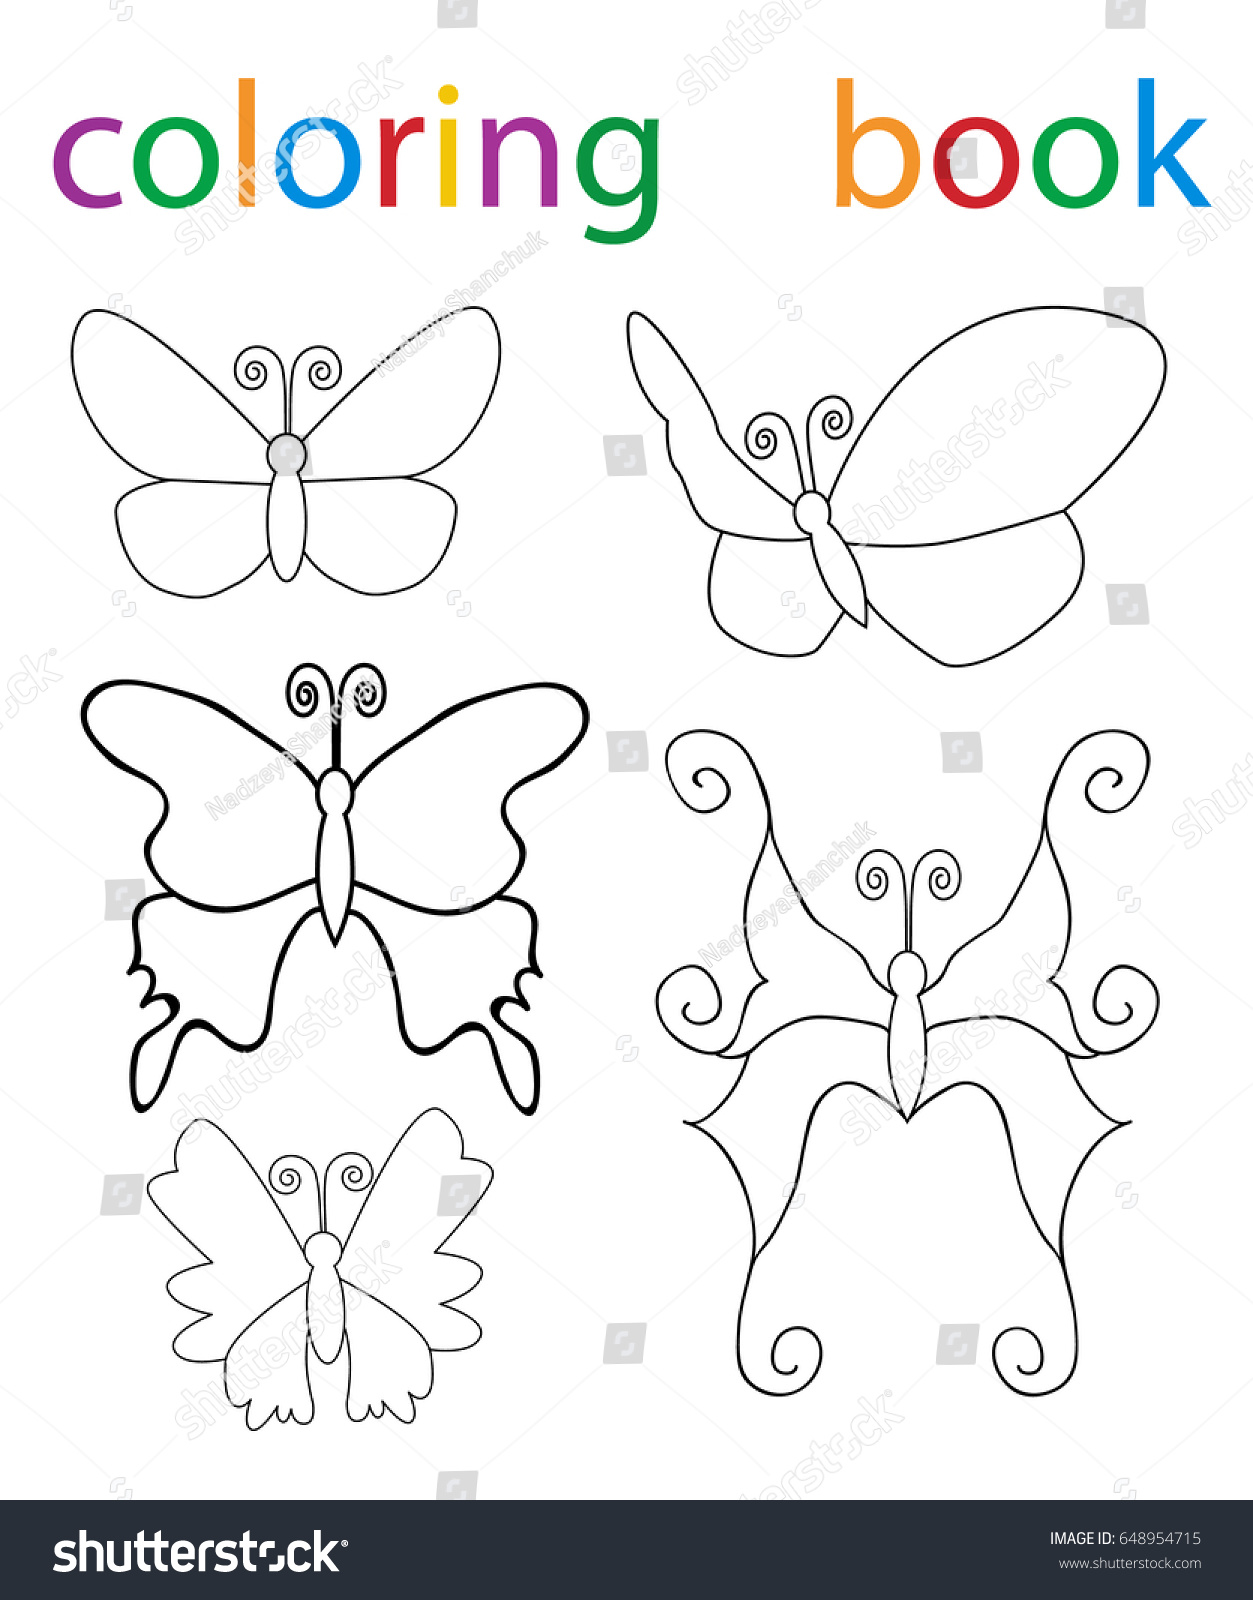 Book coloring cartoon butterfly character set stock illustration book coloring cartoon butterfly character set biocorpaavc Image collections